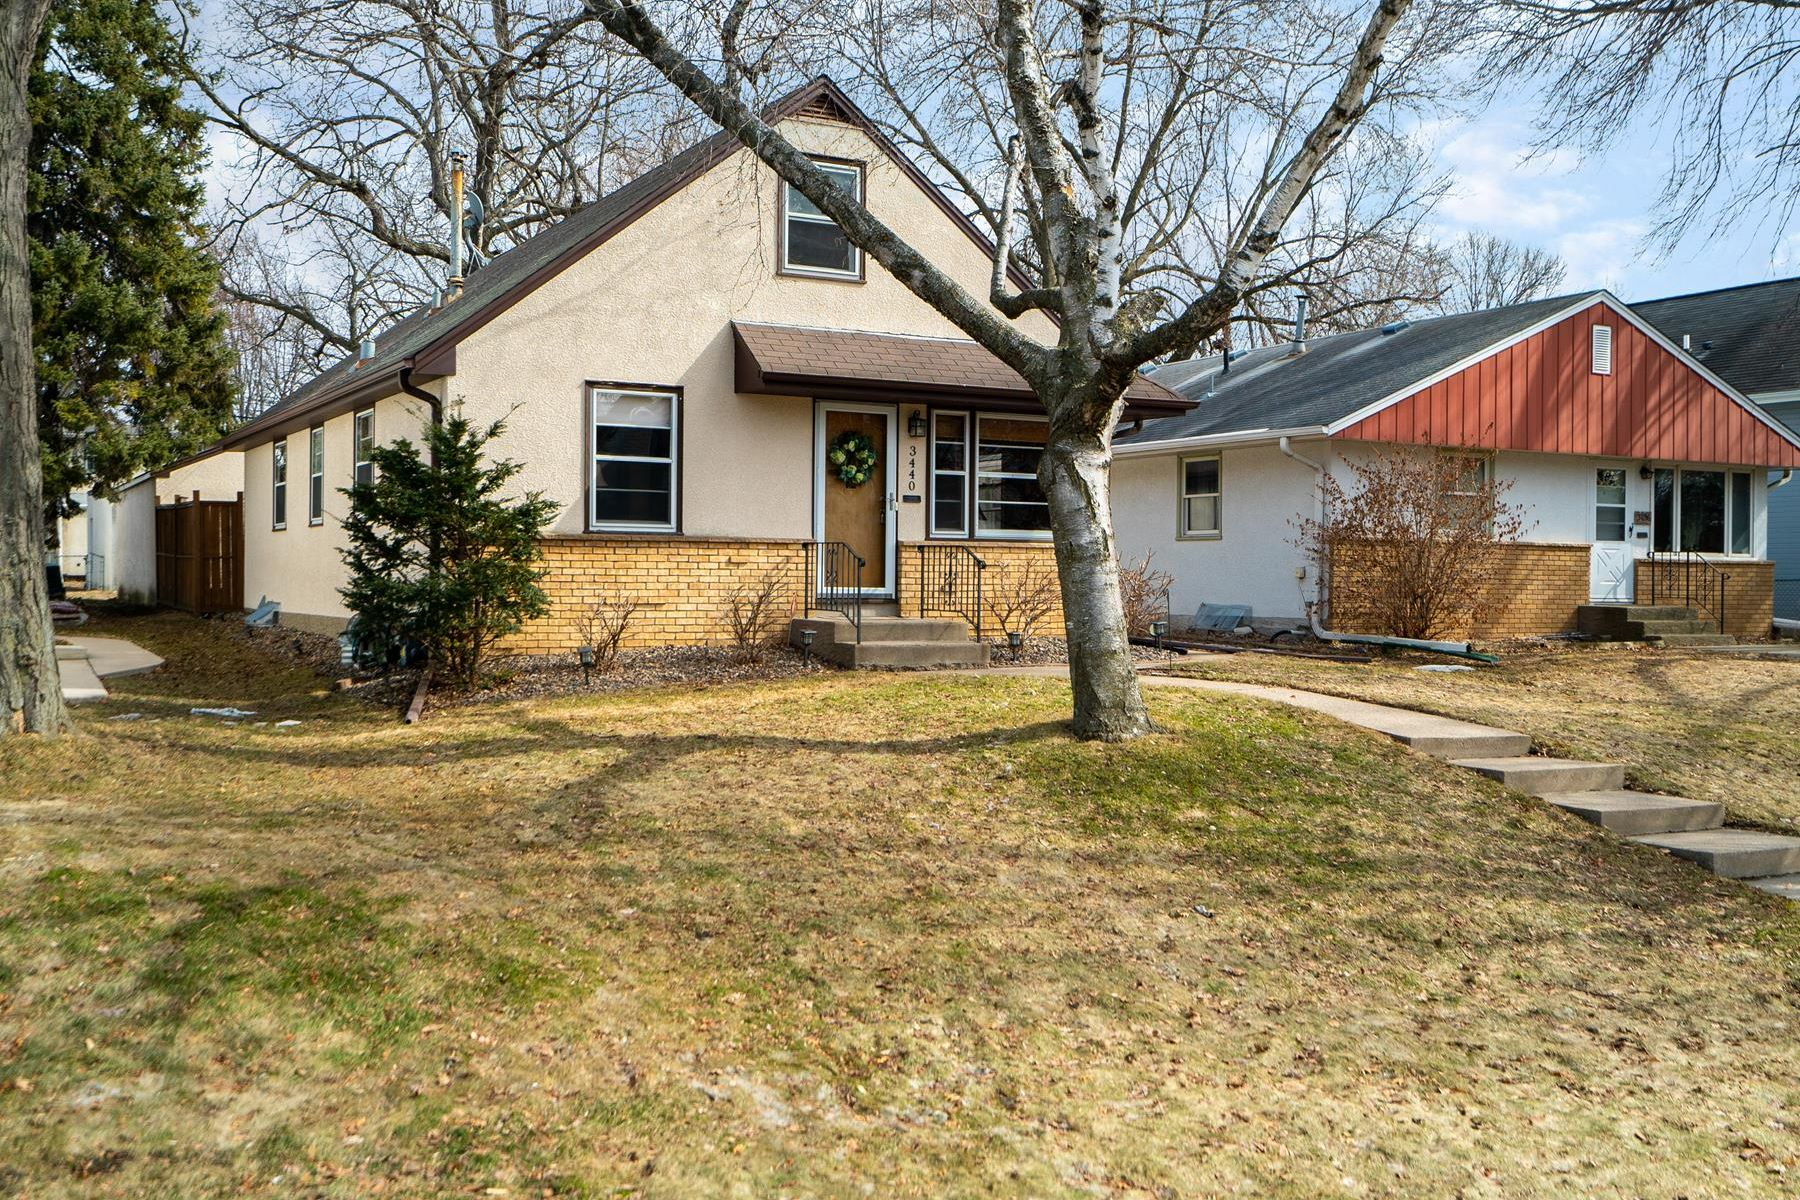 Single Family Homes for Sale at 3440 Lee Avenue N Crystal, Minnesota 55422 United States